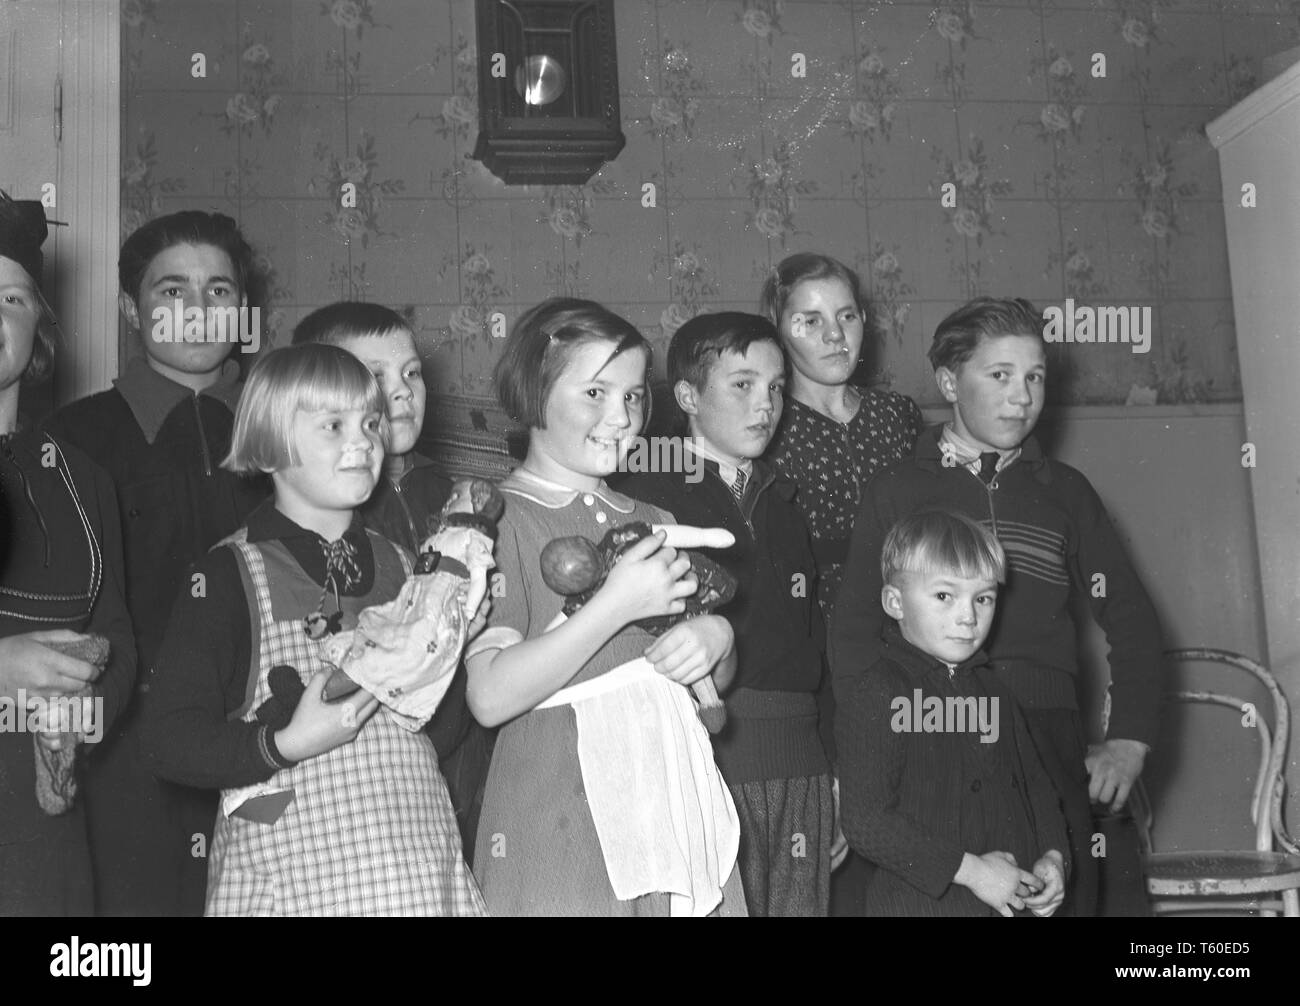 The Winter War. A military conflict between the Soviet union and Finland. It began with a Soviet invasion on november 1939 when Soviet infantery crossed the border on the Karelian Isthmus. Here a group of Finnish children evacuated to Sweden and the town Haparanda. Photo Kristoffersson ref 98-17 January 1940 - Stock Image